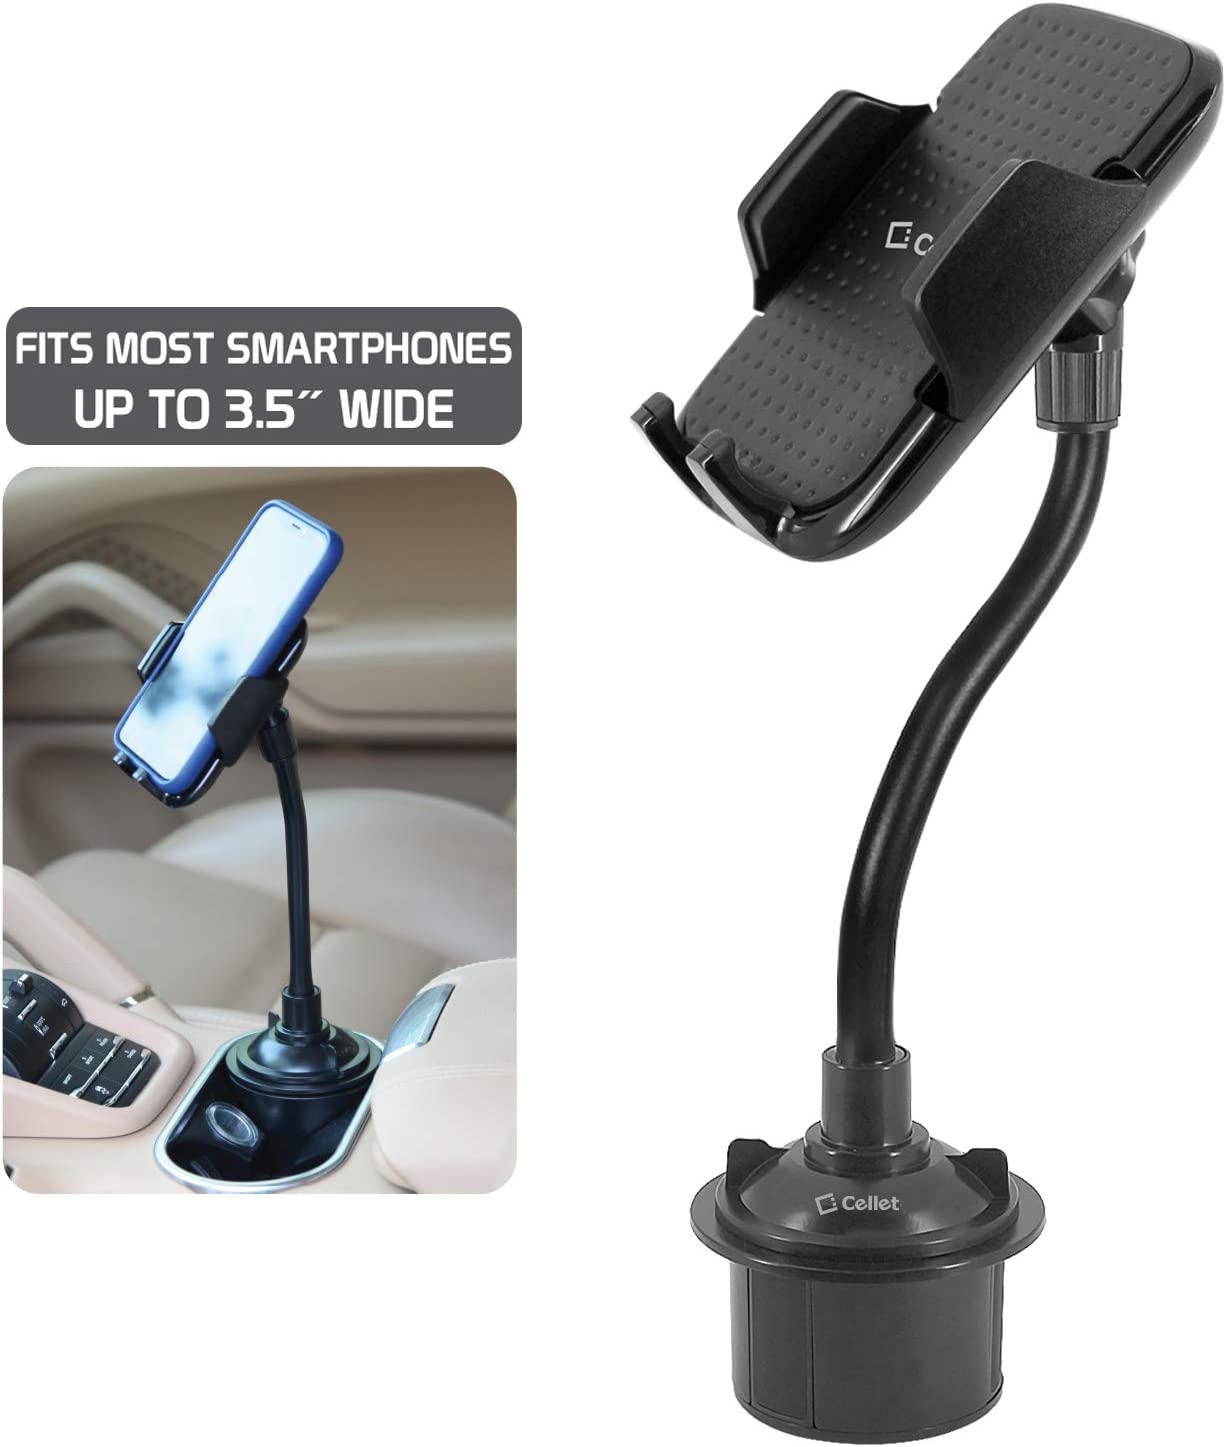 Cellet Heavy Duty Cup Holder Smartphone Mount Compatible to Apple iPhone 11 X Xs Xr Xs Max 8 8+ Samsung Note 10 9 8 Galaxy S10 S20 S20+ S10e S10Plus S9 Plus P30 Pro Google Pixel 4 3 XL OnePlus 6T